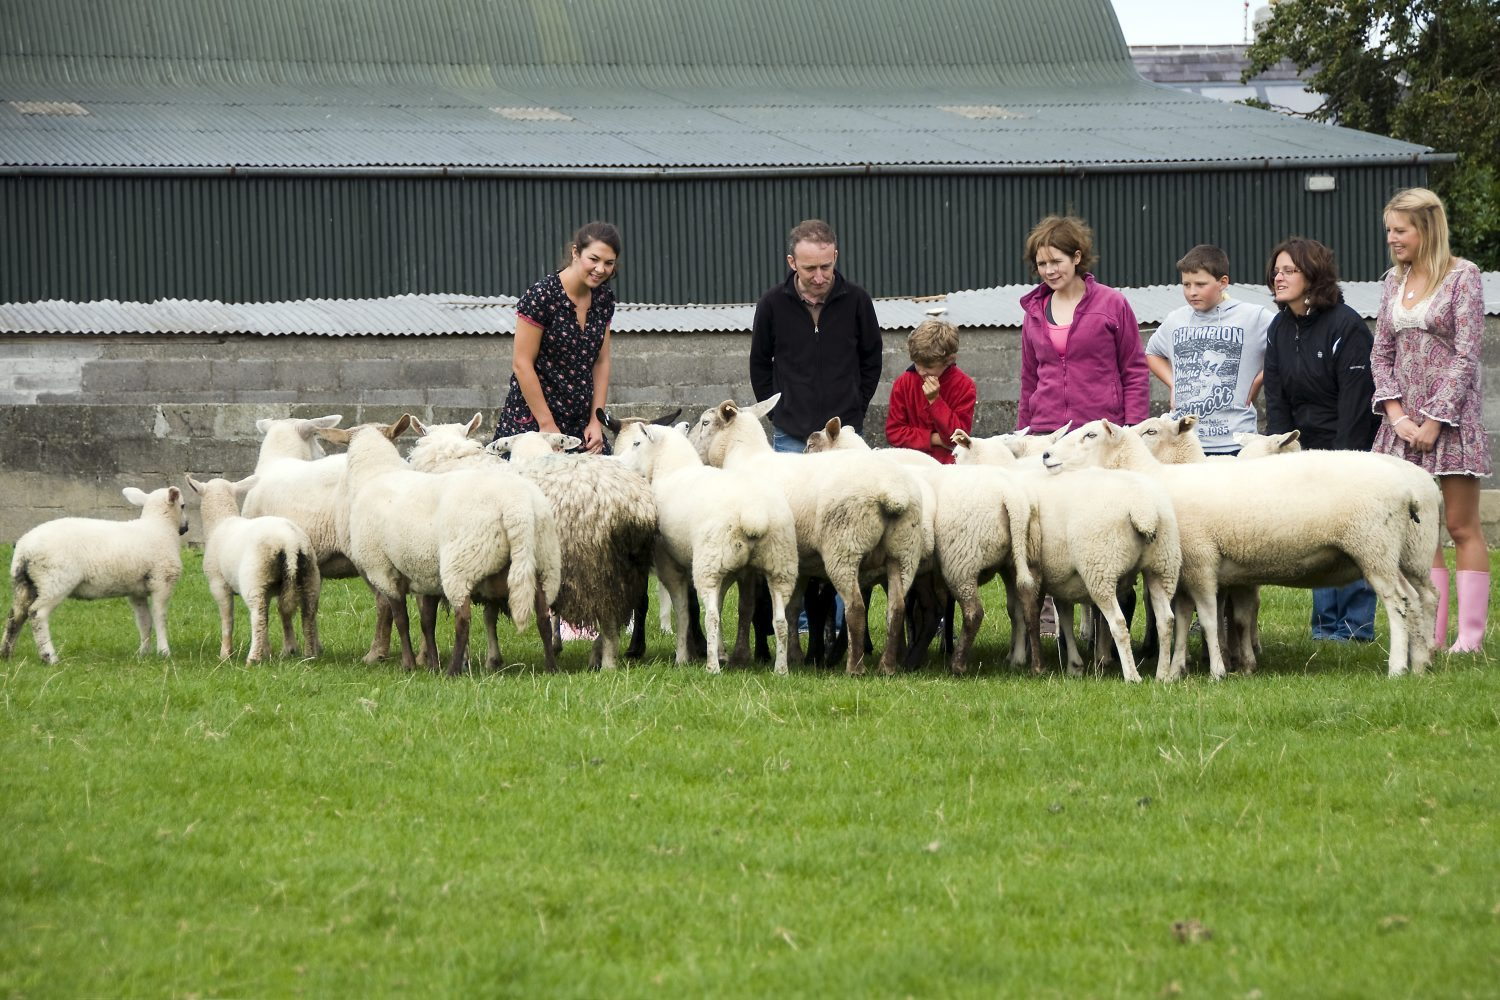 an Irish sheep farm